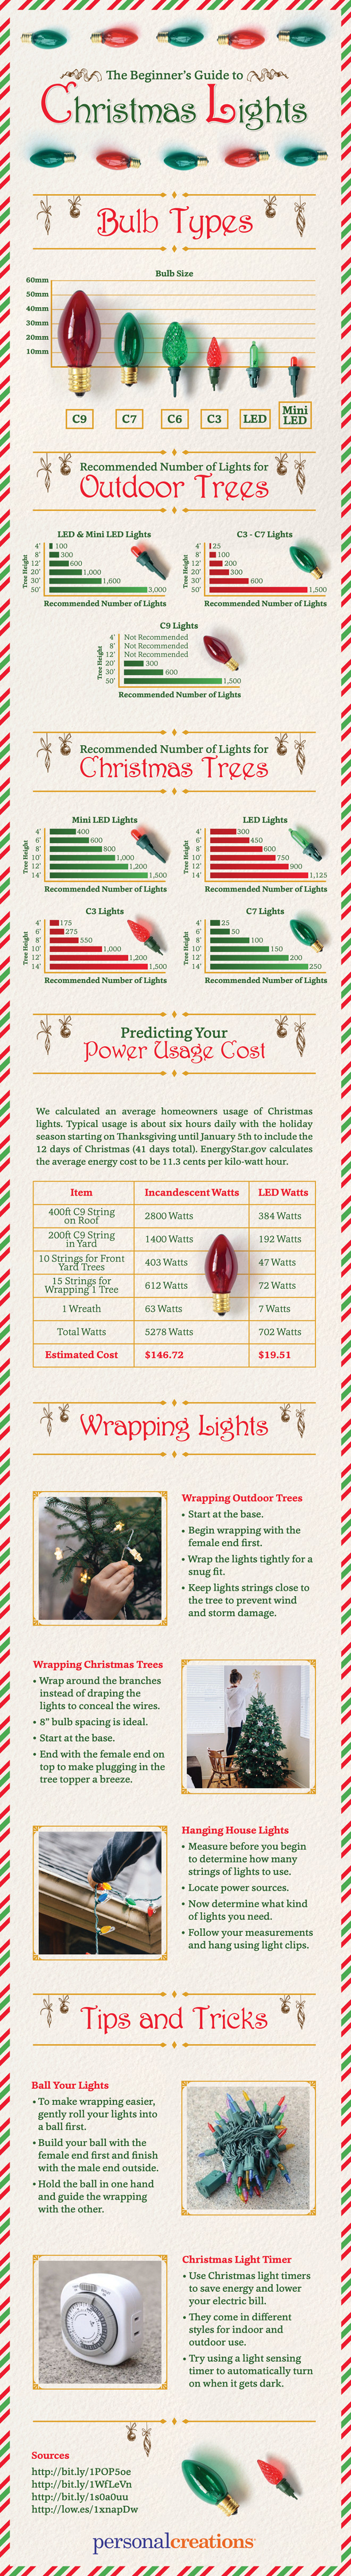 The beginner's guide to Christmas lights. How to care for your Christmas Lights. How to store Christmas Lights. How to Install Christmas Lights. Everything you need to know about Christmas Lights. #ChristmasLights Via Personal Creations.